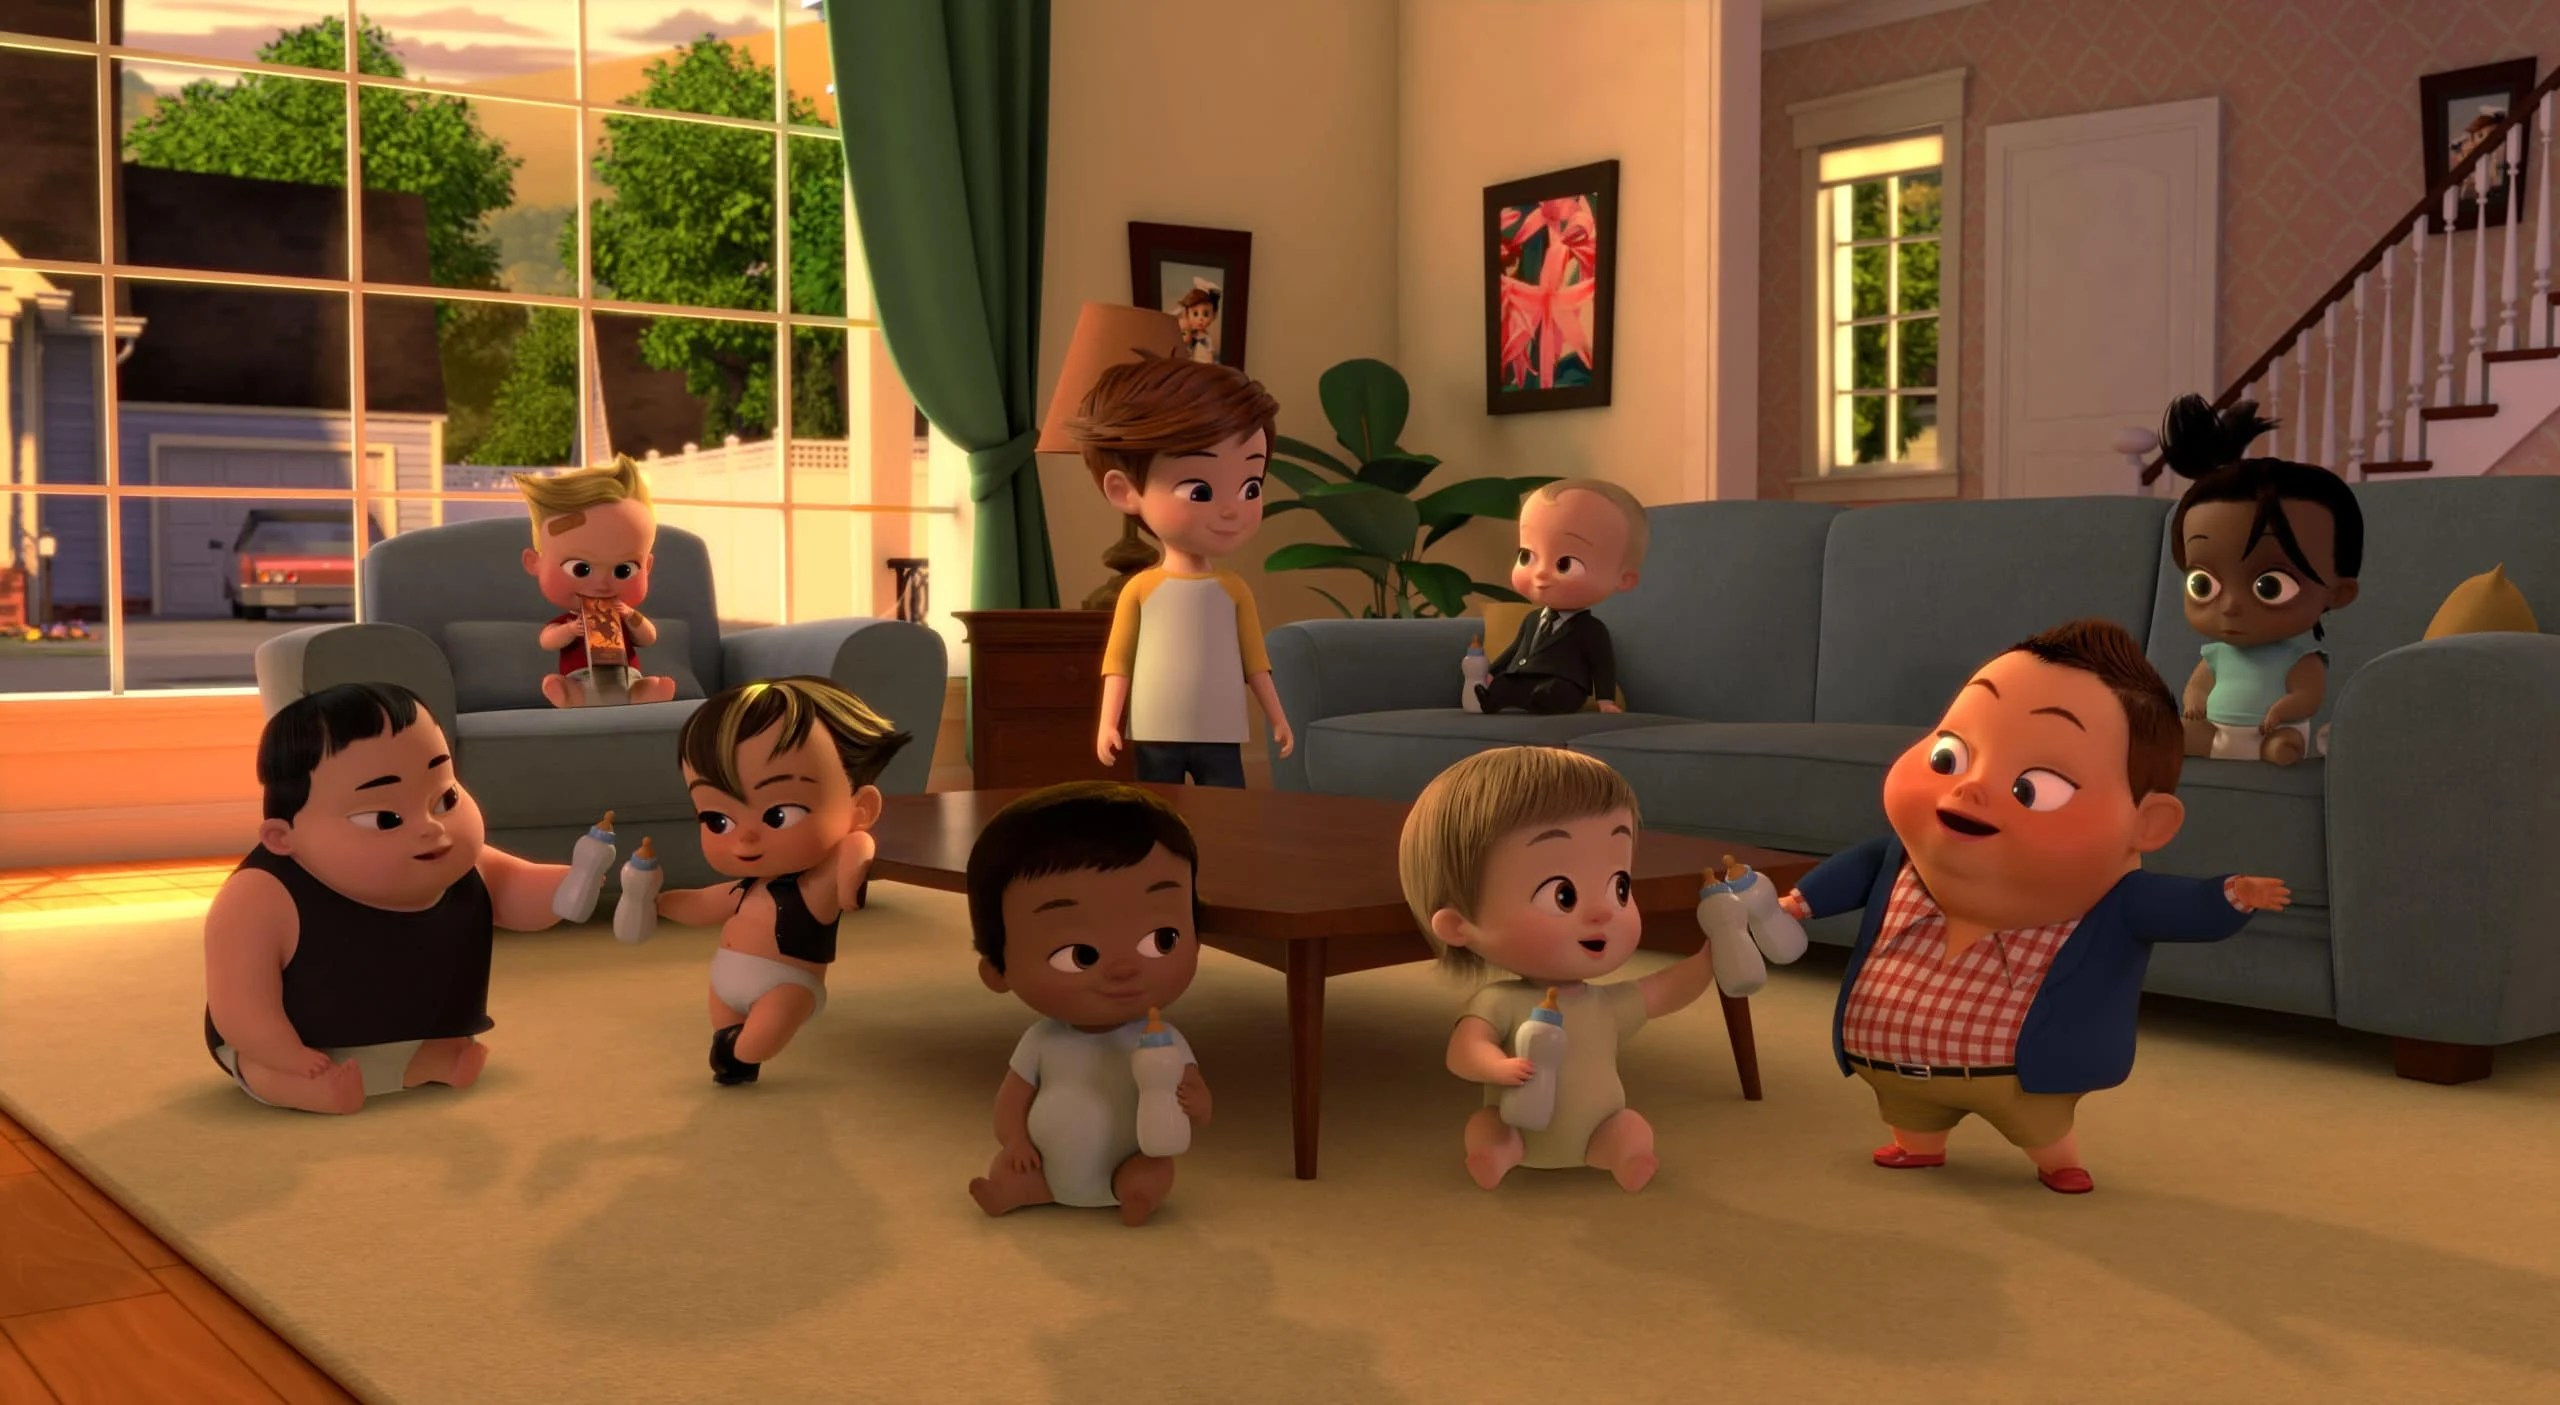 All Babies and Tim. Boss Baby Season 3 Back In Business - Netflix Premiere March 16. The boss is back, baby! After a long sabbatical everyone's favorite modern career baby makes a comeback in the newly launched Season 3 trailer for ?DreamWorks The Boss Baby Back in Business?.